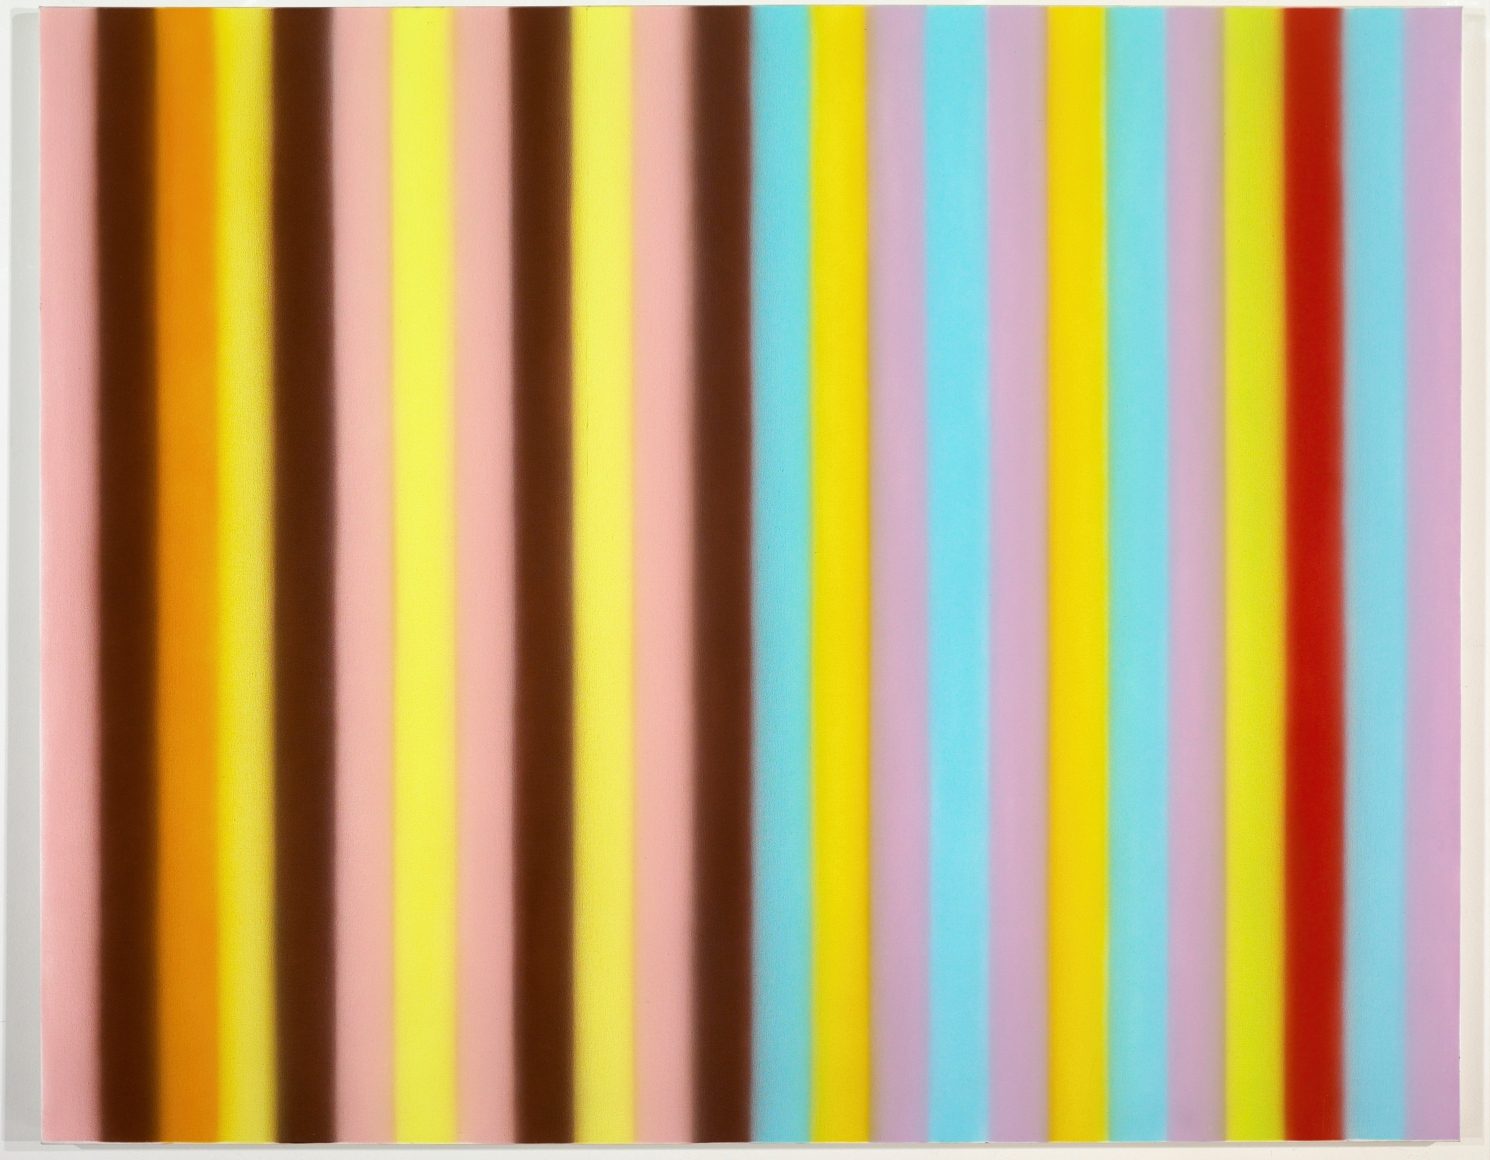 Sweet Gene, 1998, Synthetic polymer on canvas